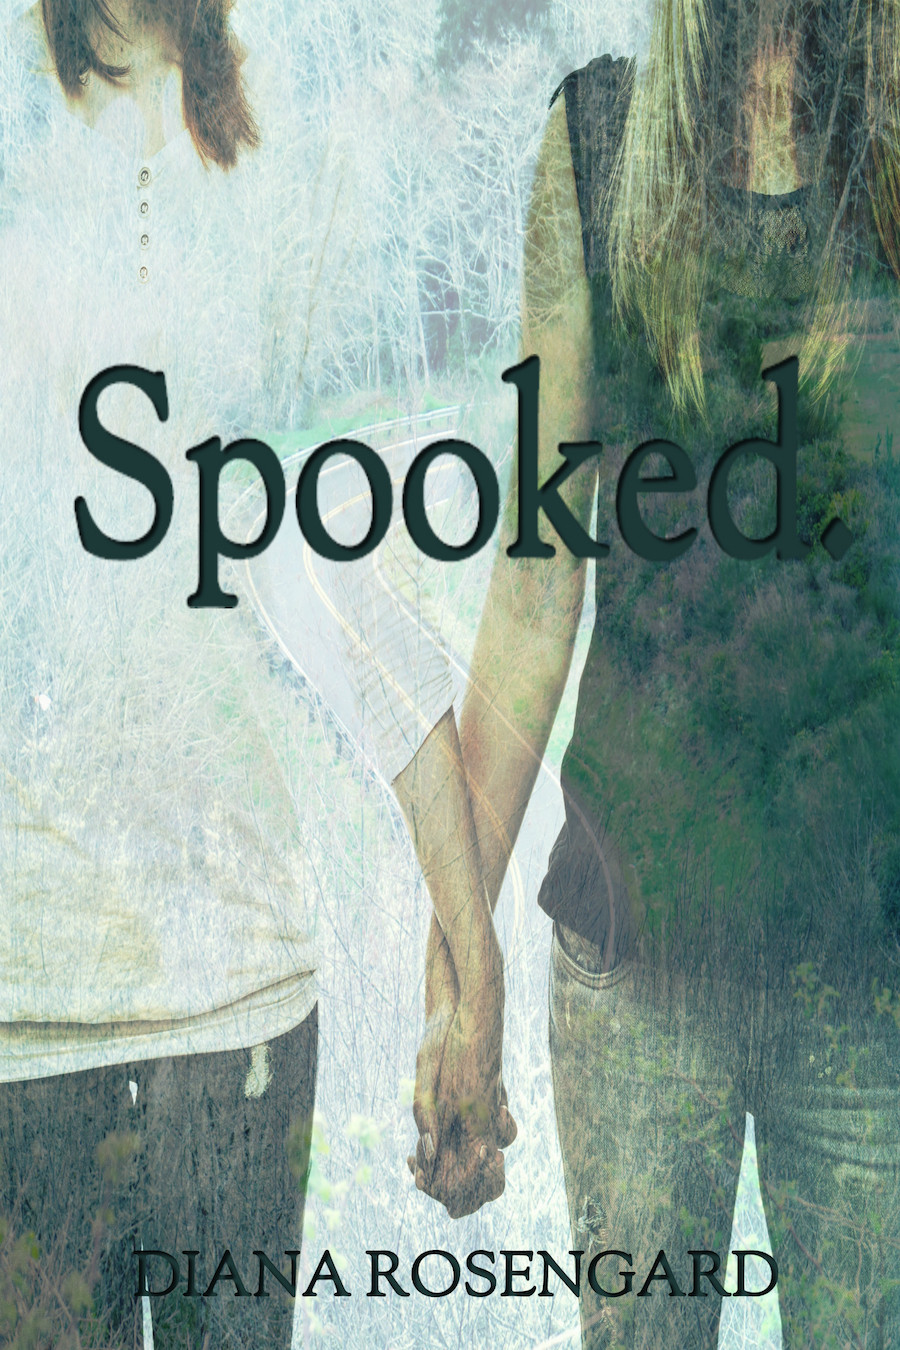 Spooked. by Diana Rosengard